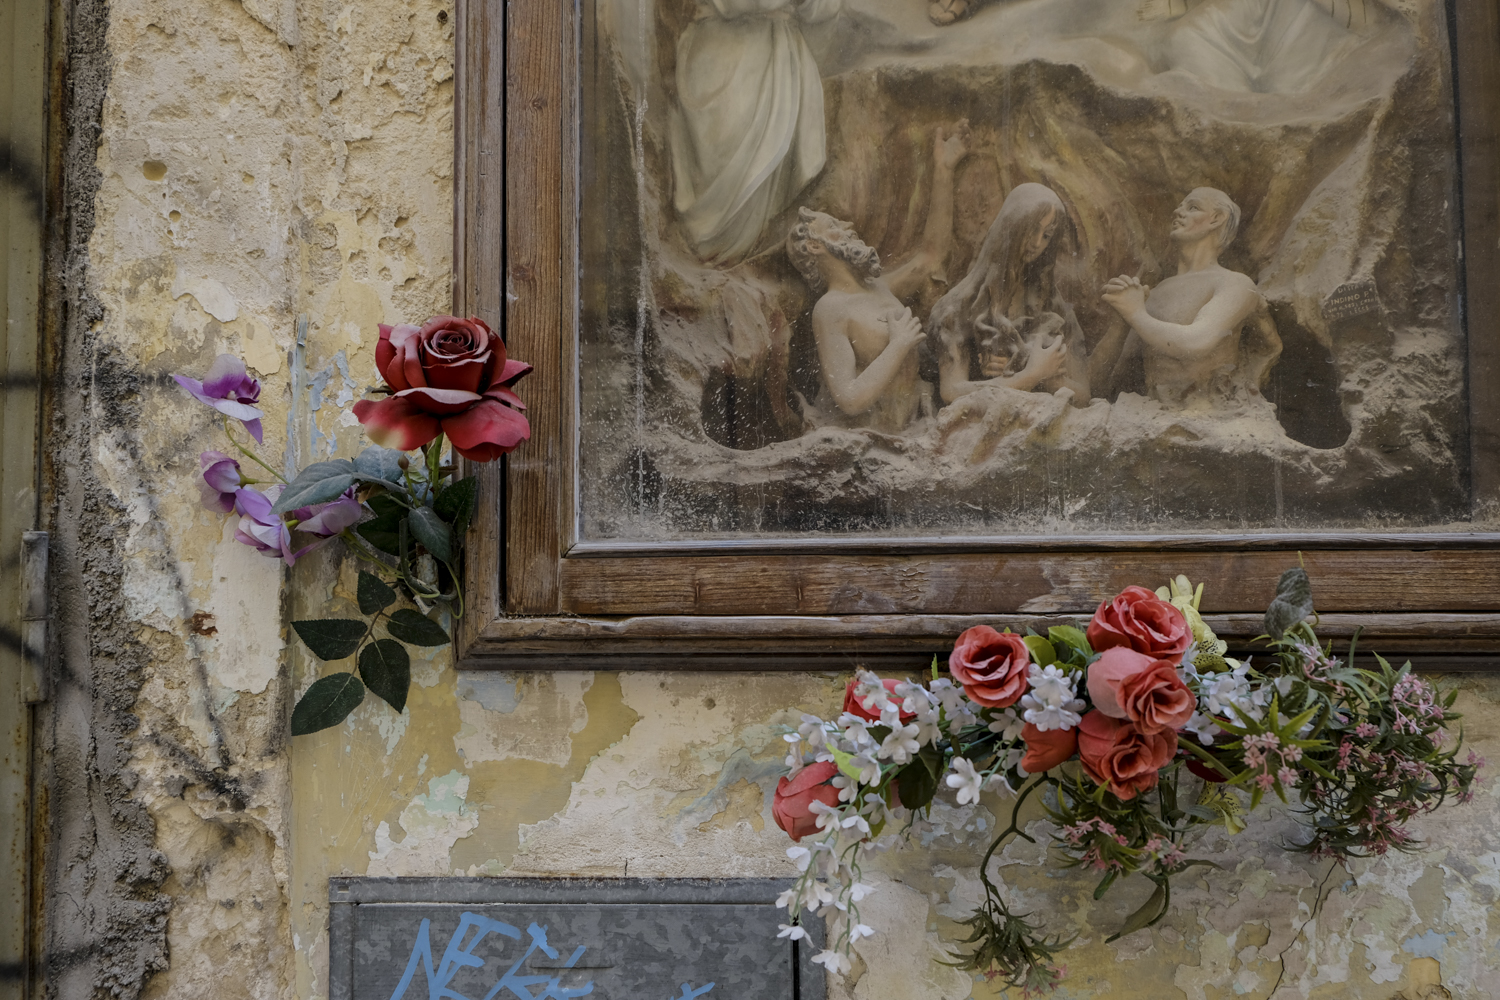 Lecce street shrine and graffiti